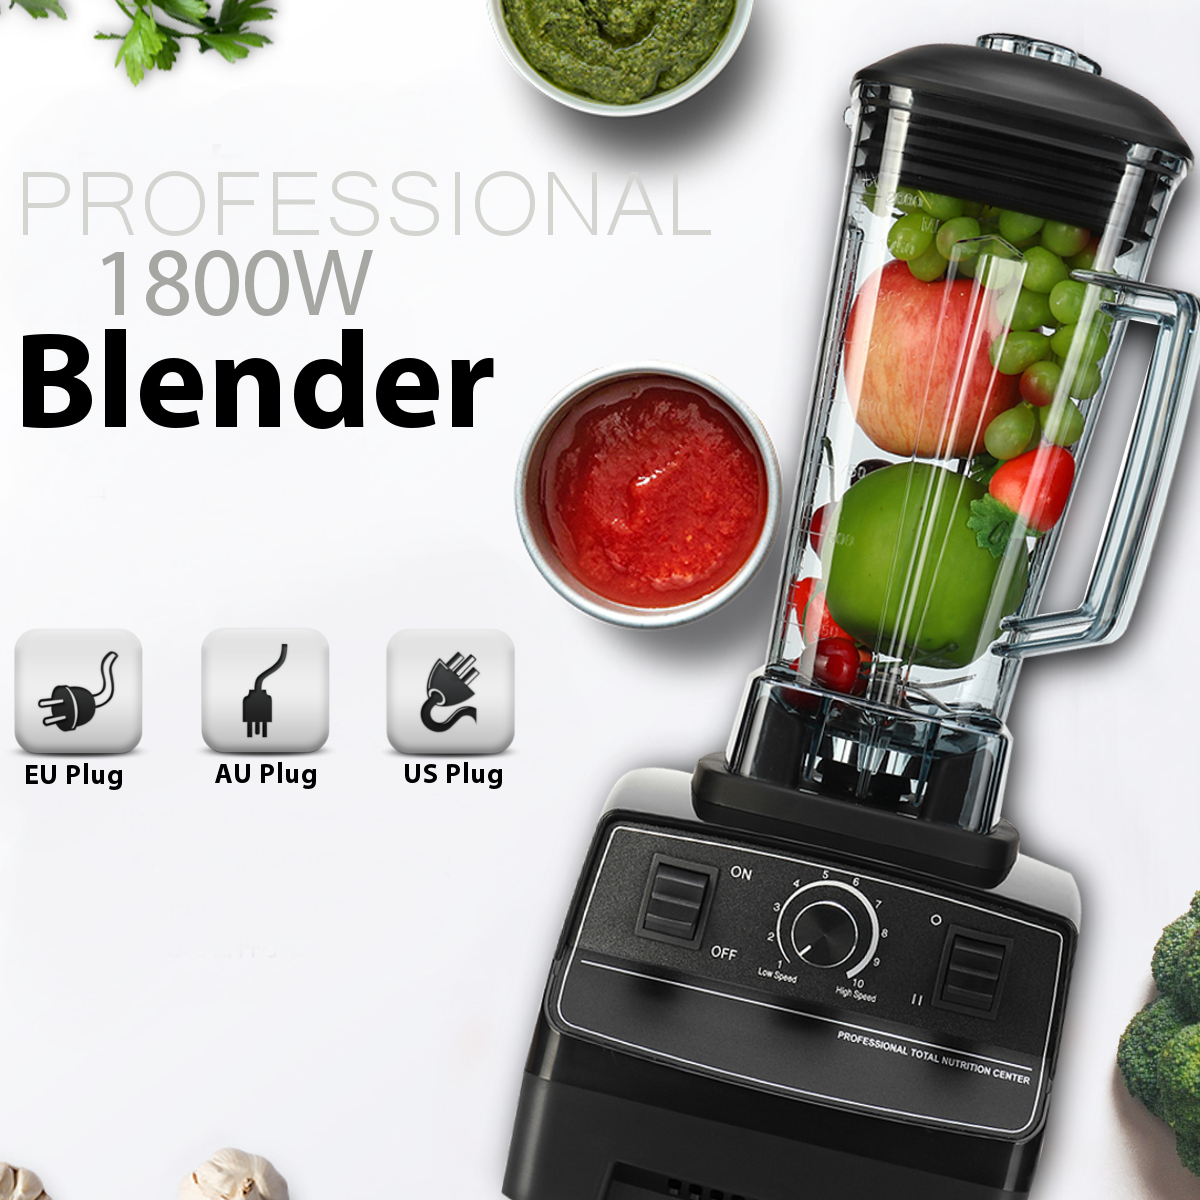 G5200 1800W Rpm 36000-peak 2L Mixer Blenders EU/US/AU 6 Blades Create Friction Heat Stainless Steel Overcurrent Protection стоимость